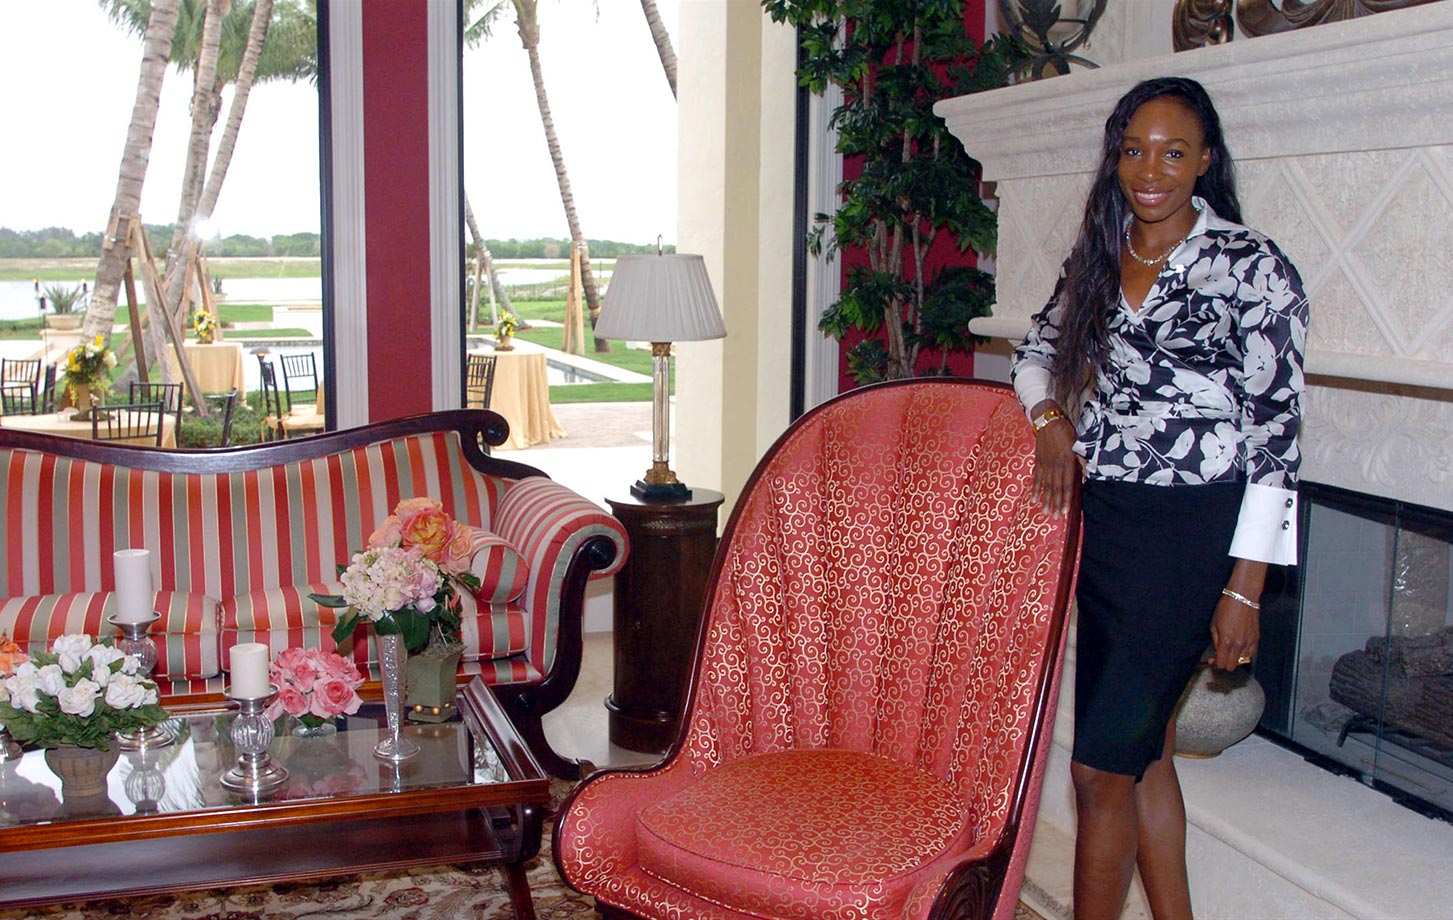 In 2002, Venus took her talents off the court to start her own interior design company, V Starr Interiors, based in Jupiter, Fla. Williams has said that once her tennis career ends she would like to focus on her design business.